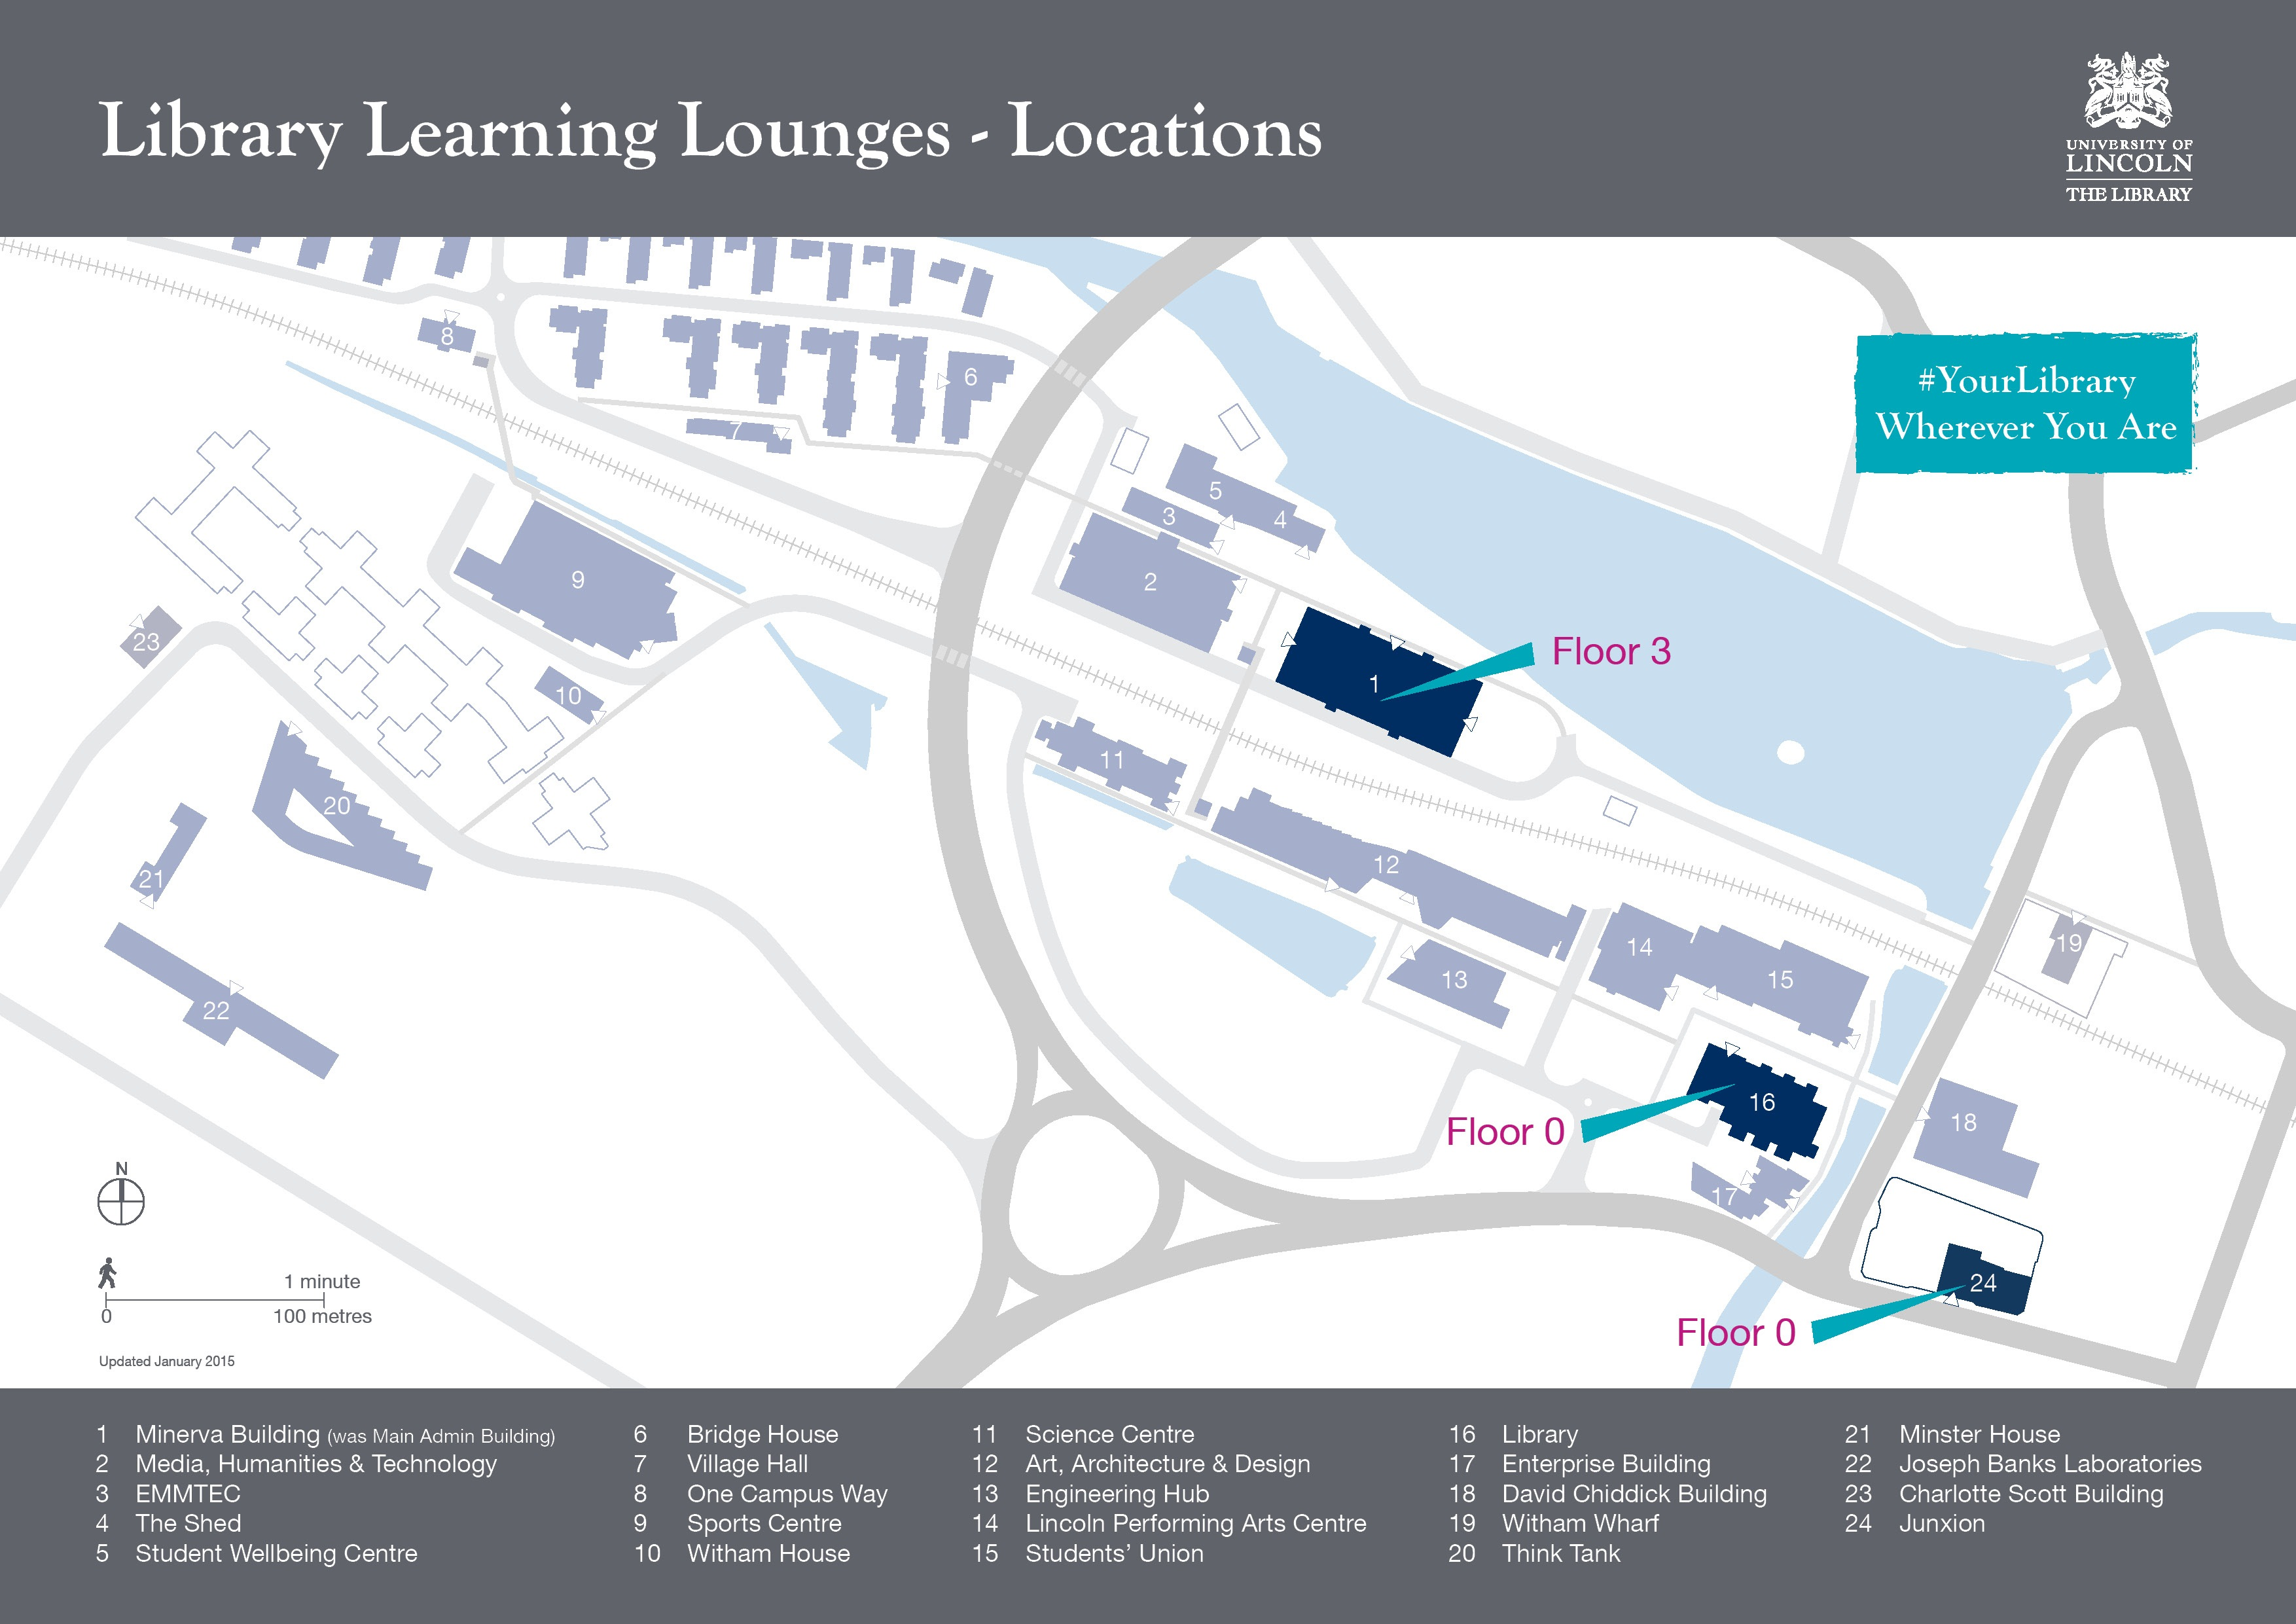 Learning lounges map